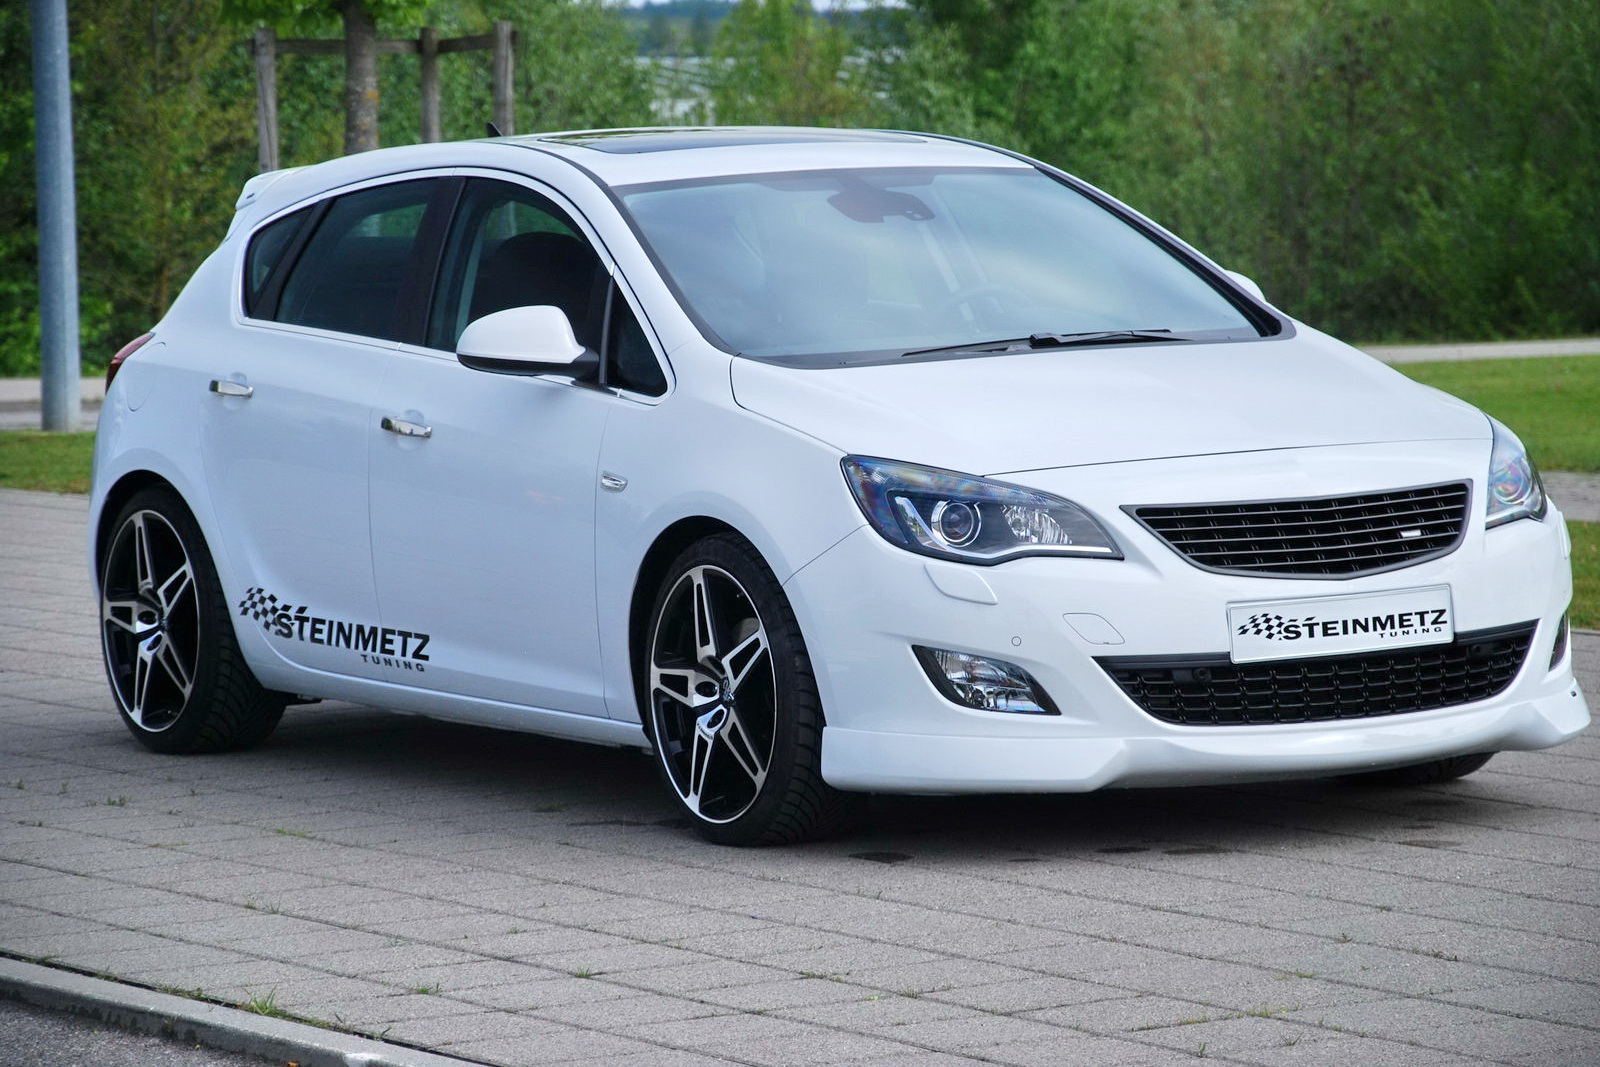 steinmetz spiffs up new 2010 opel astra carscoops. Black Bedroom Furniture Sets. Home Design Ideas